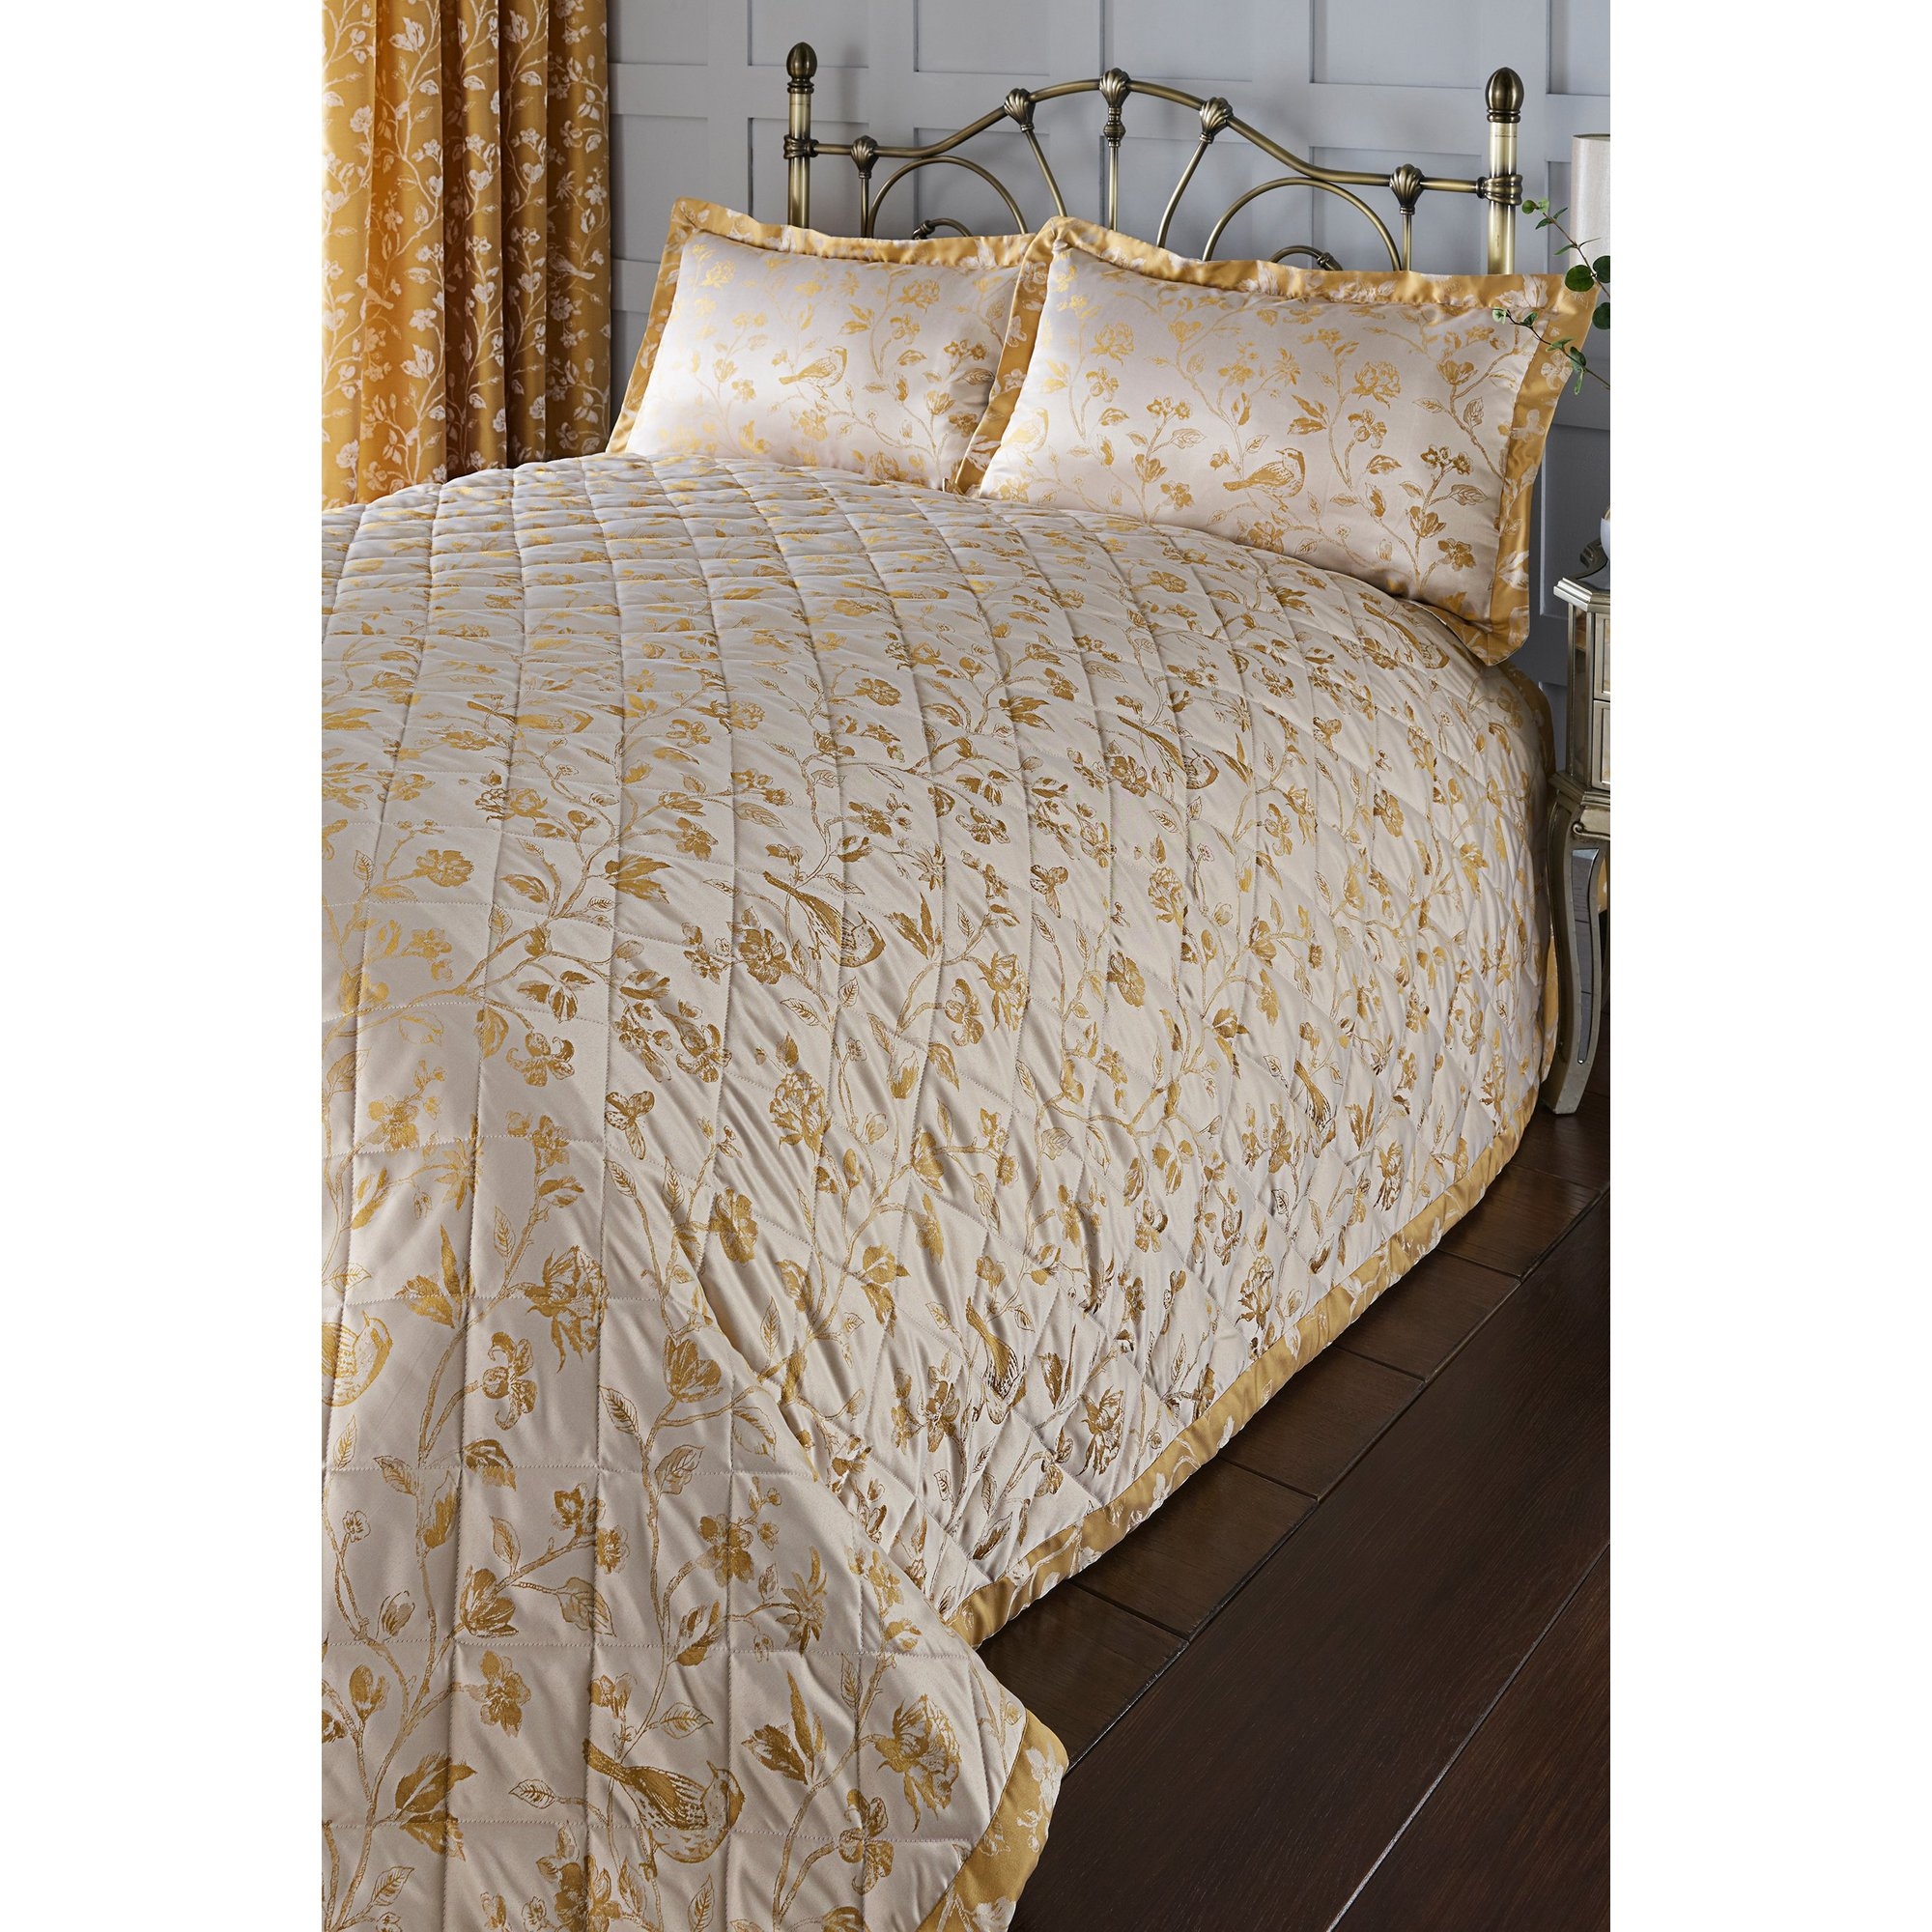 Image of Bird and Blossoms Jacquard Bedspread